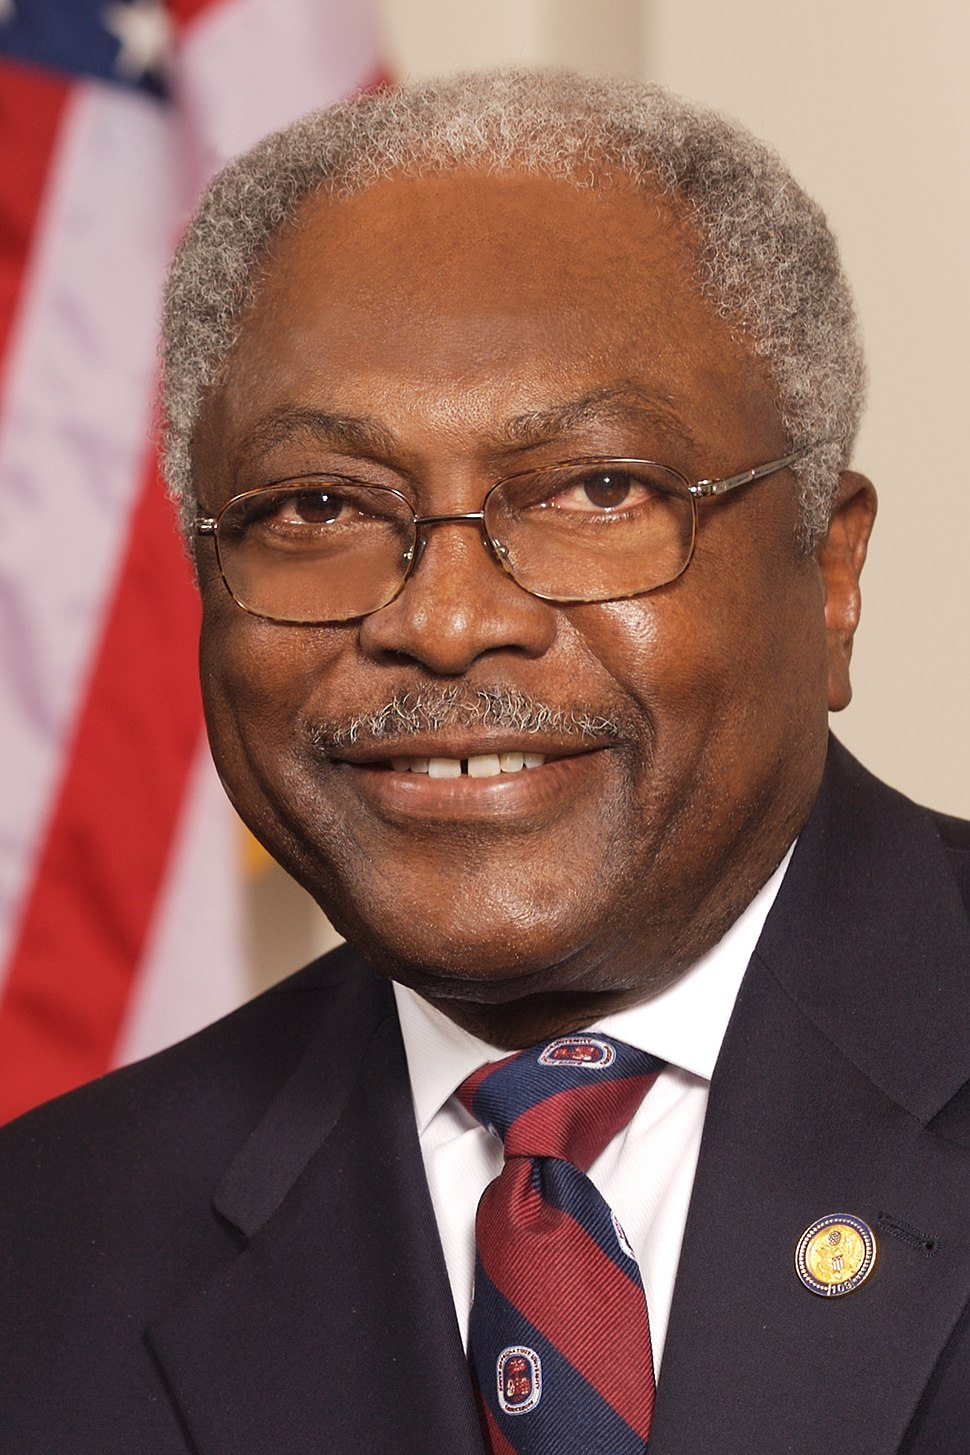 James Clyburn, official Congressional Majority Whip photo